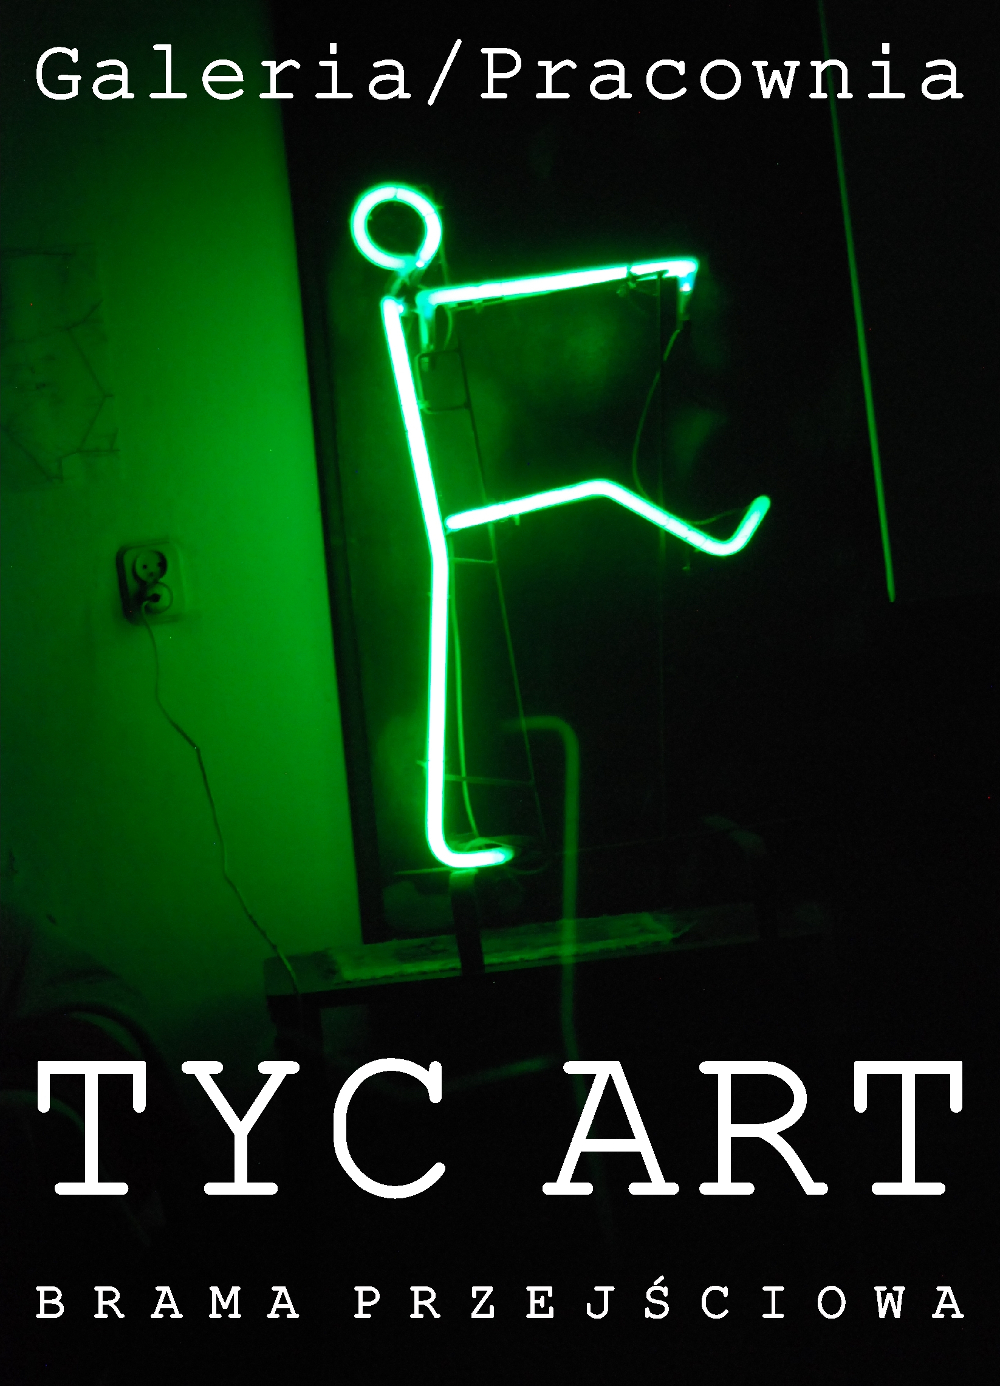 LOGO TYC ART bb m